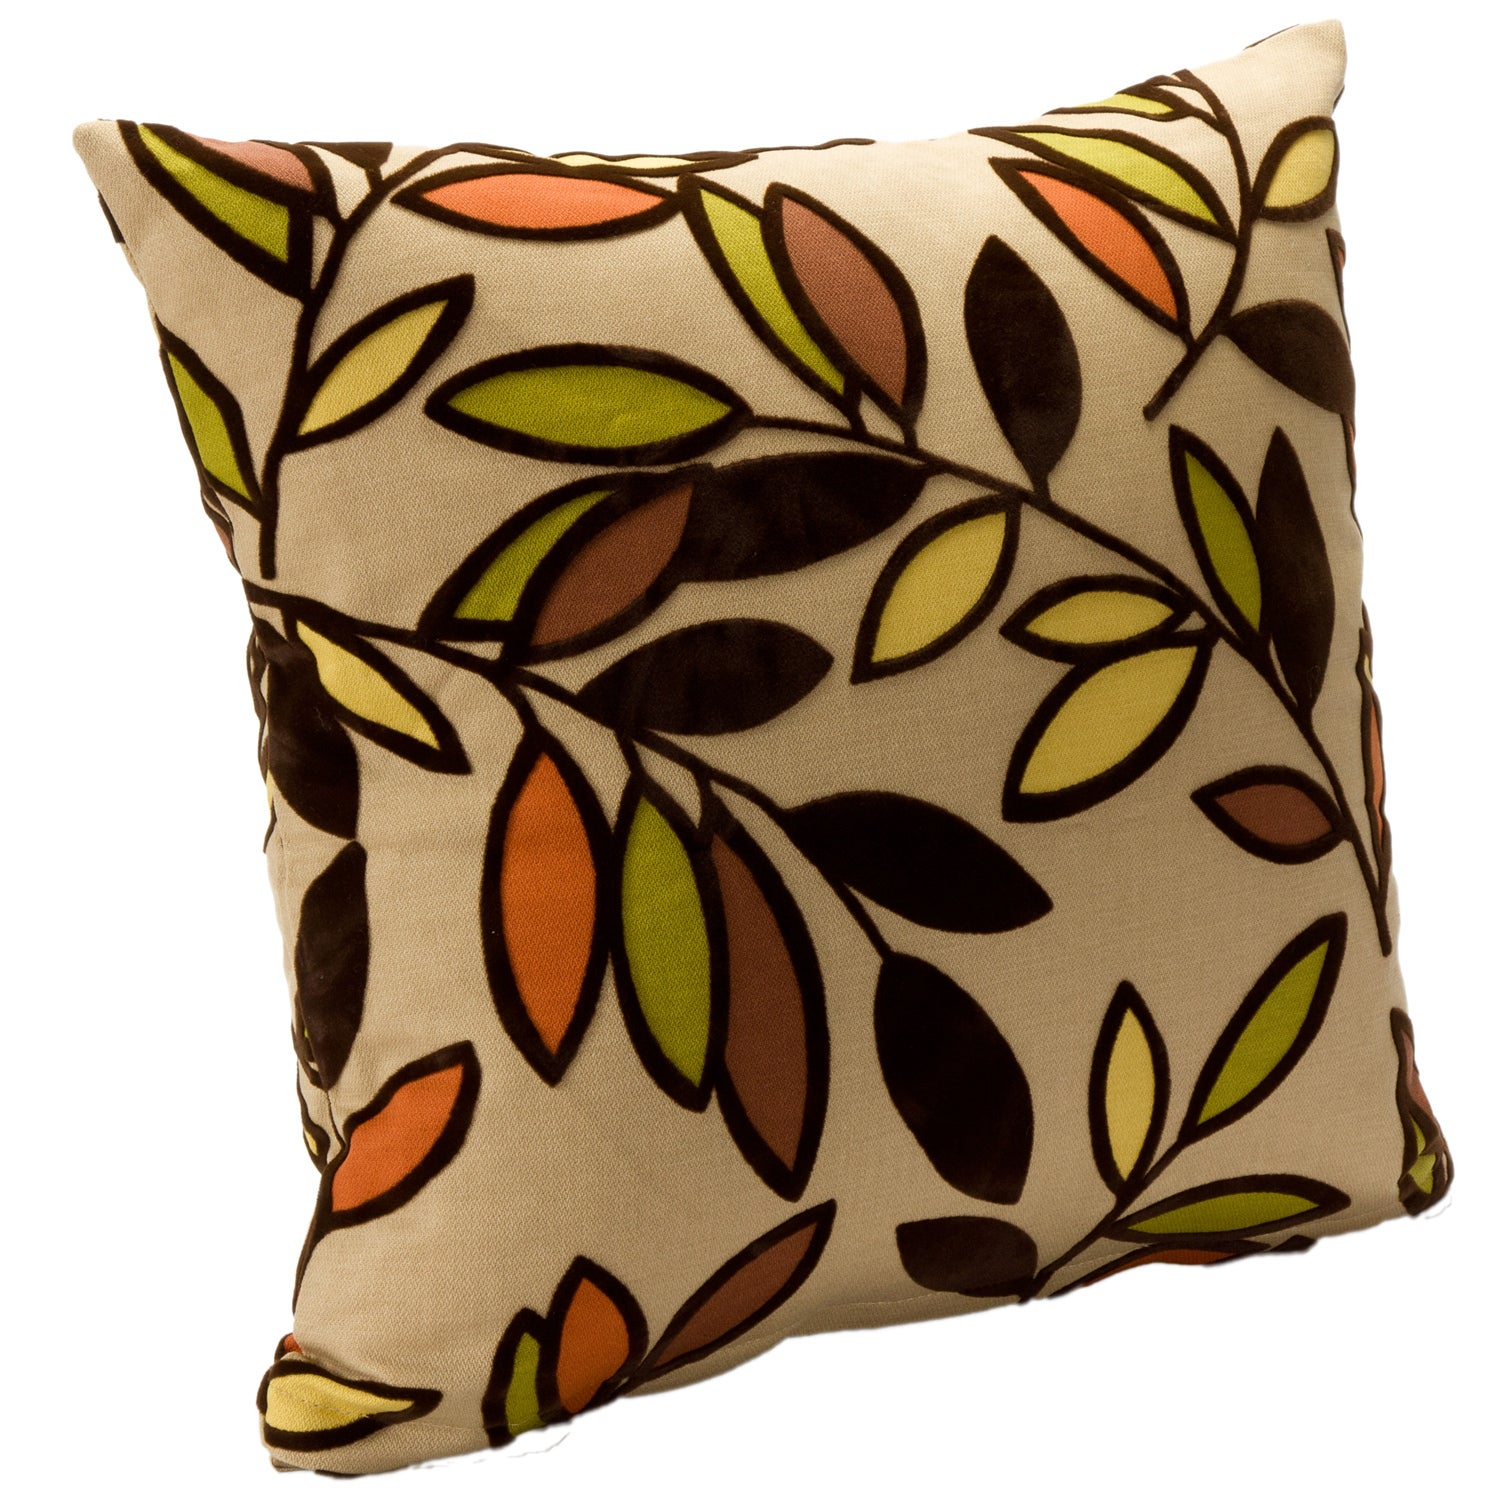 Contemporary 'Kirby Jewel' Square Accent Pillow